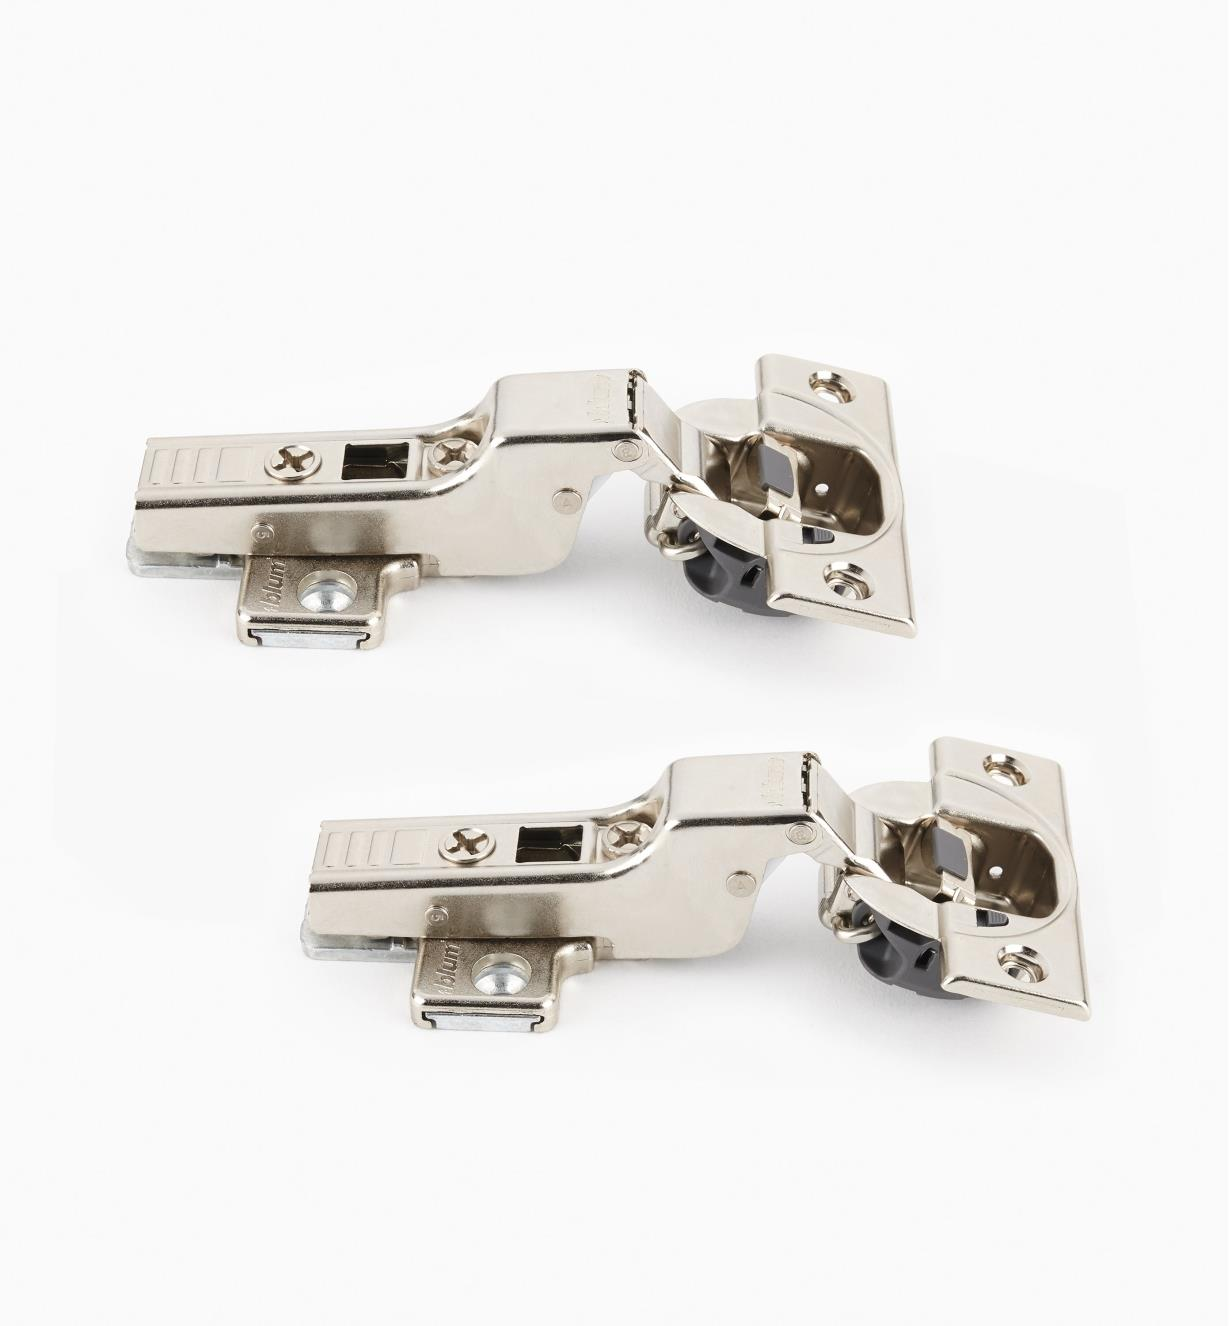 00B1802 - Blum Standard 110° Soft-Close Clip-Top Half Overlay Hinges, pr